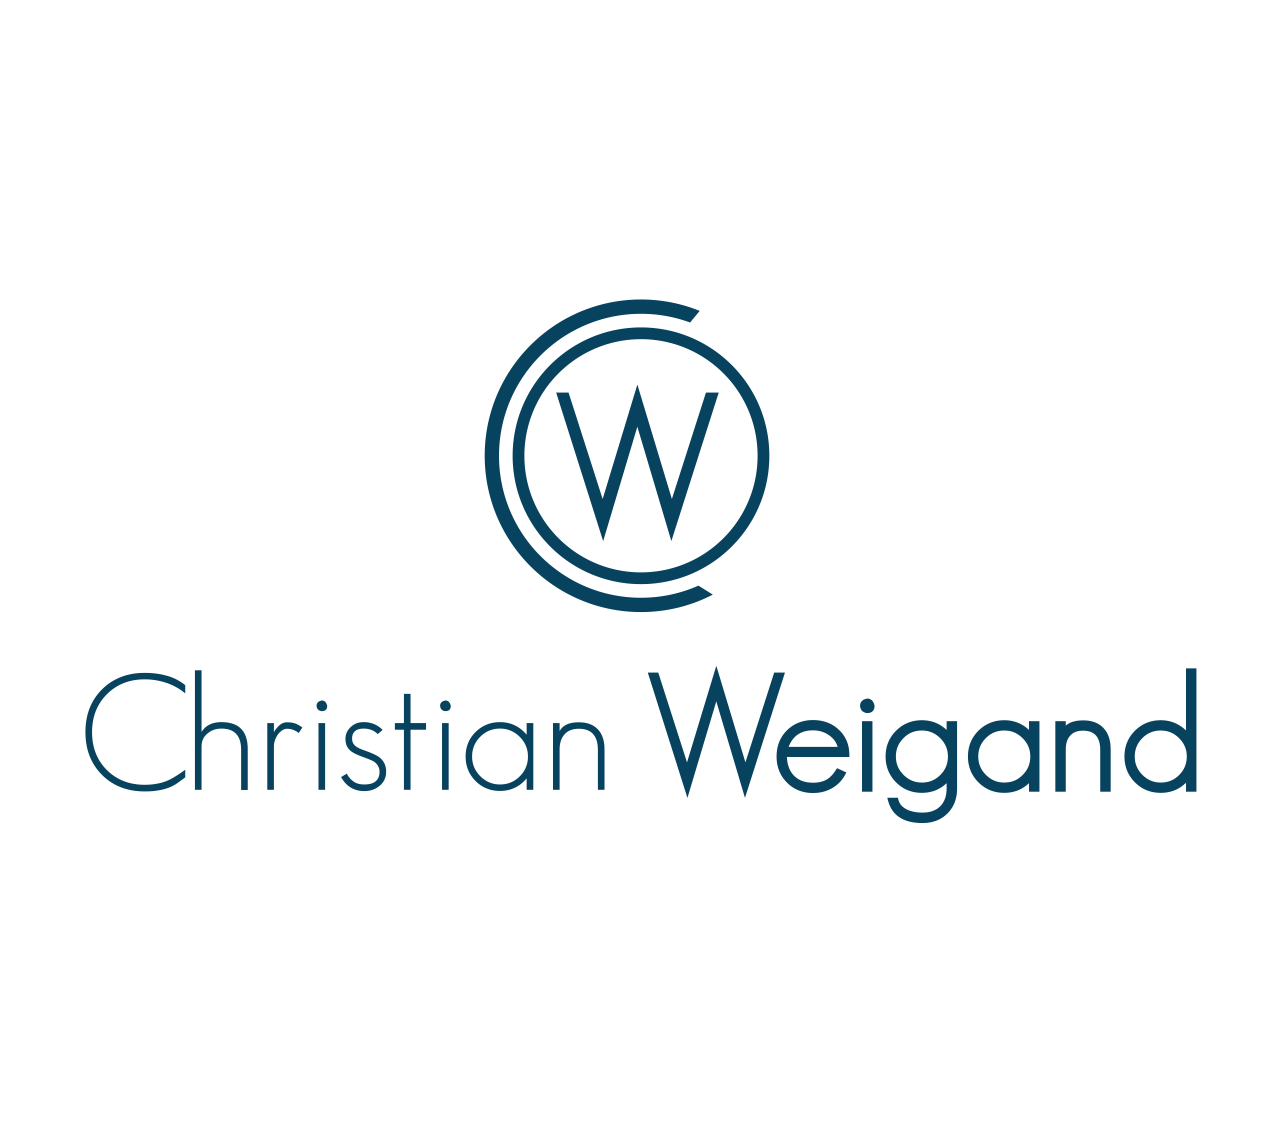 Dr. Weigand